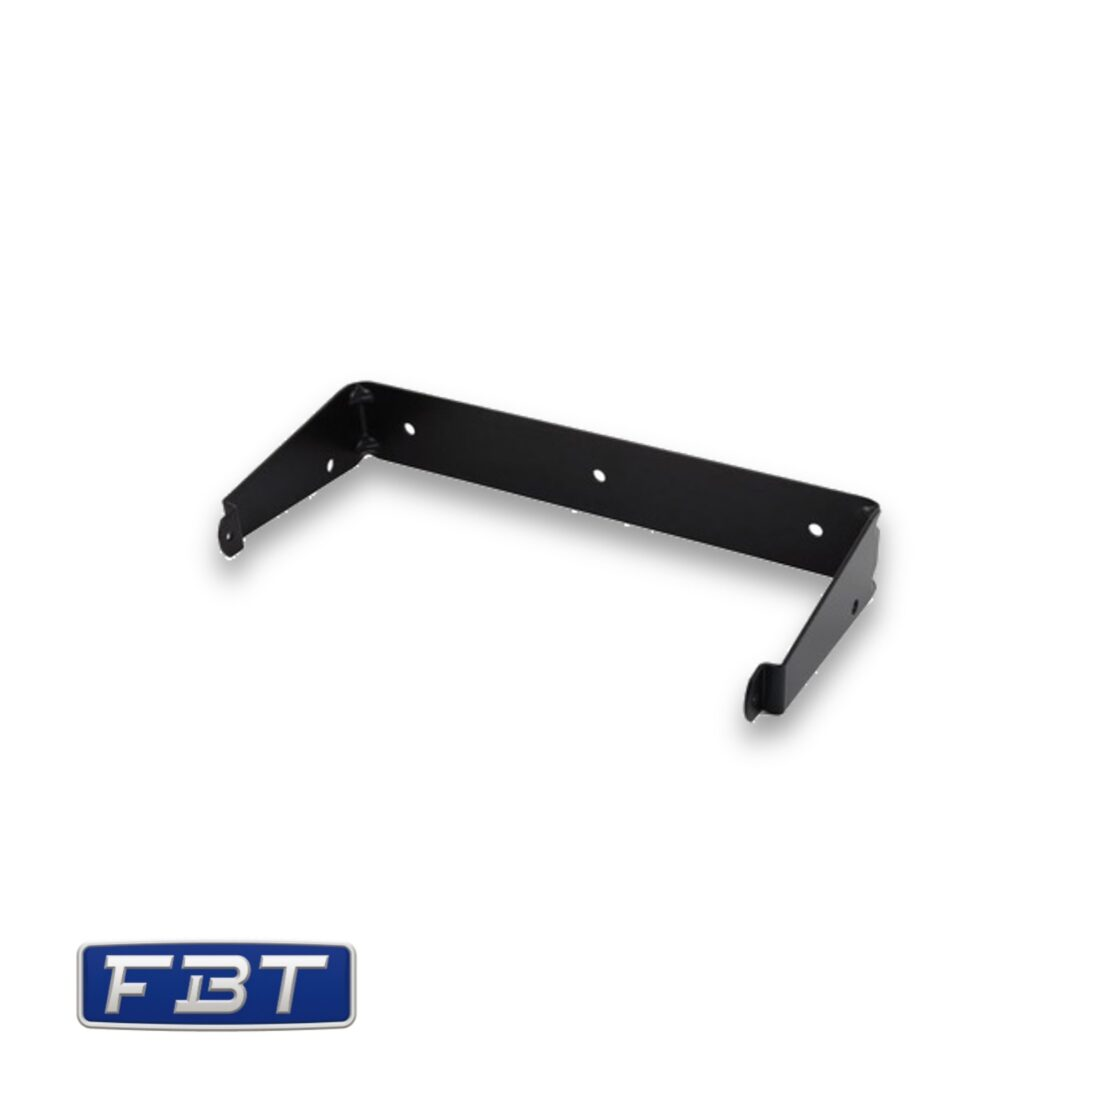 FBT VN-U108 wall bracket